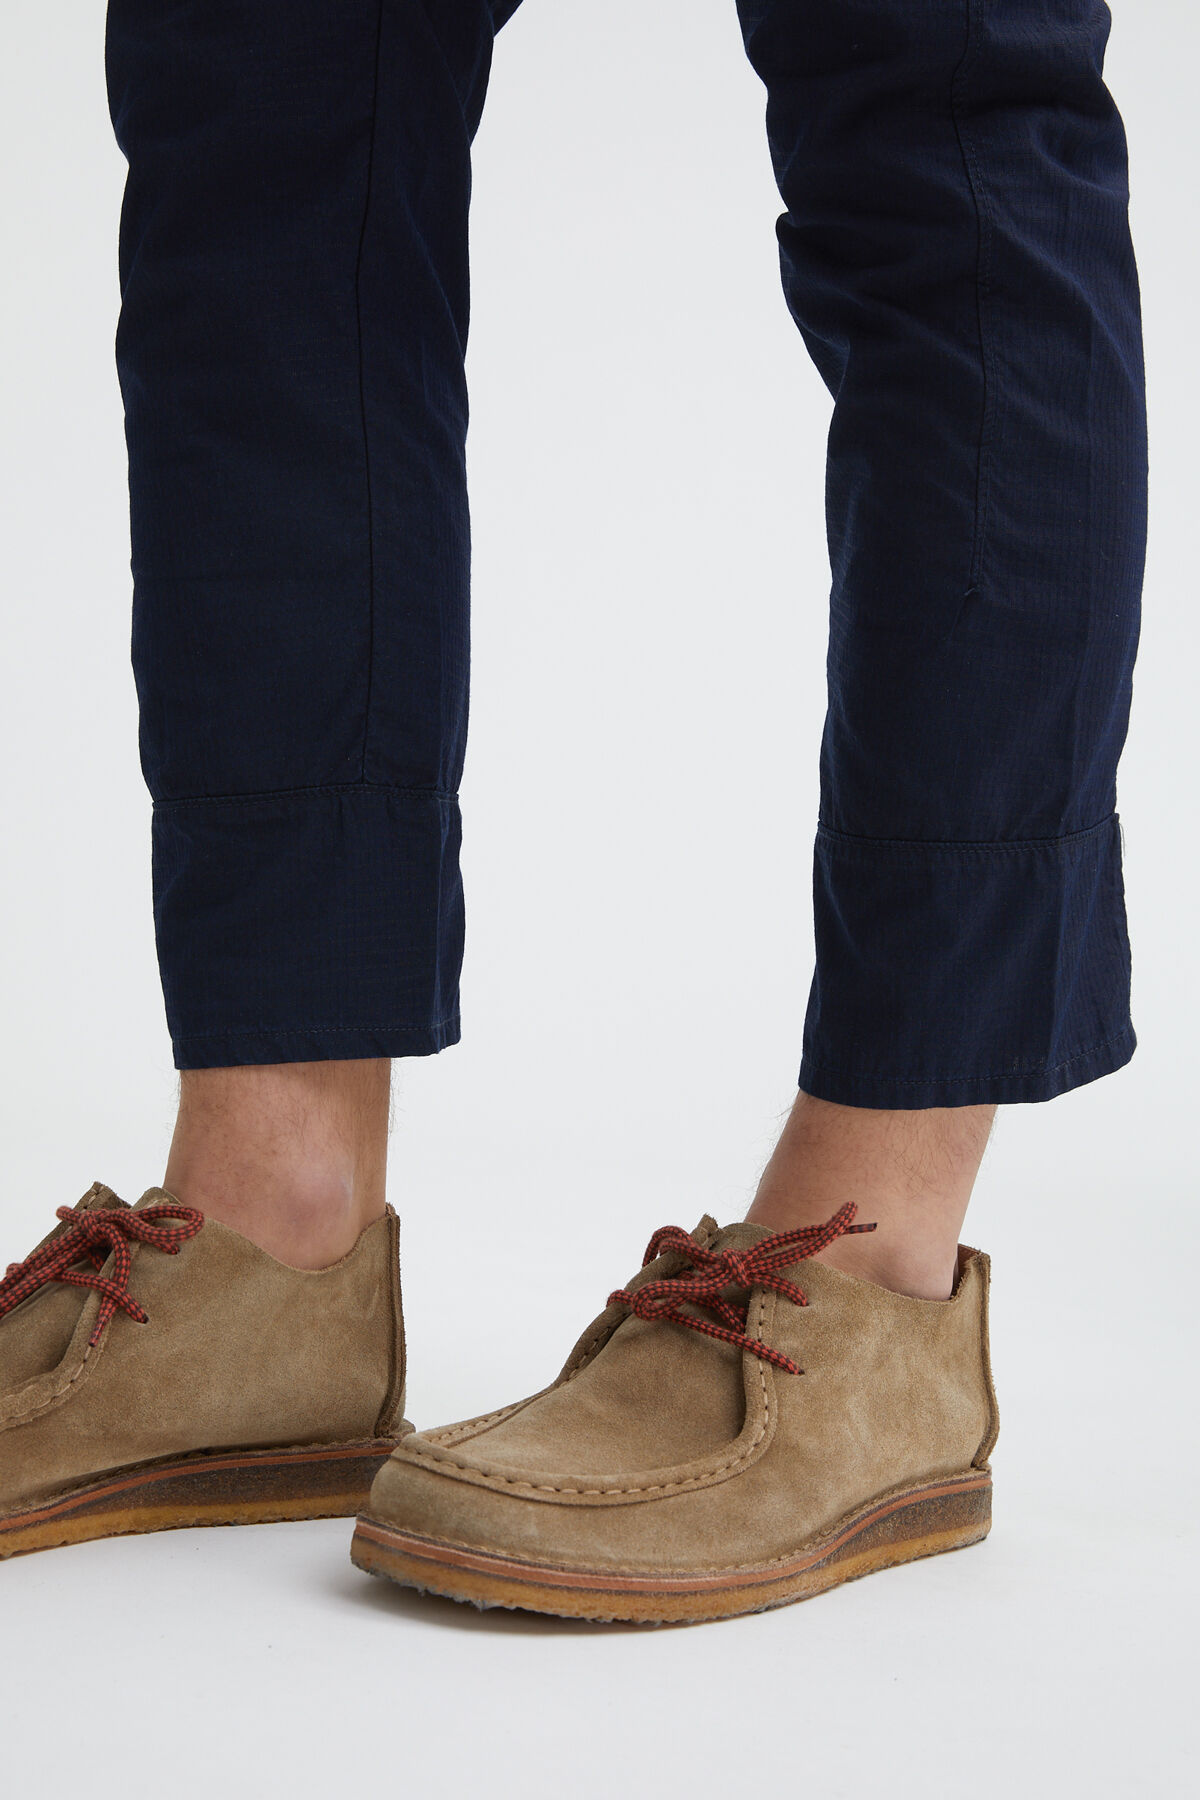 KINETIC CARGO Cotton & Nylon - Tapered Fit